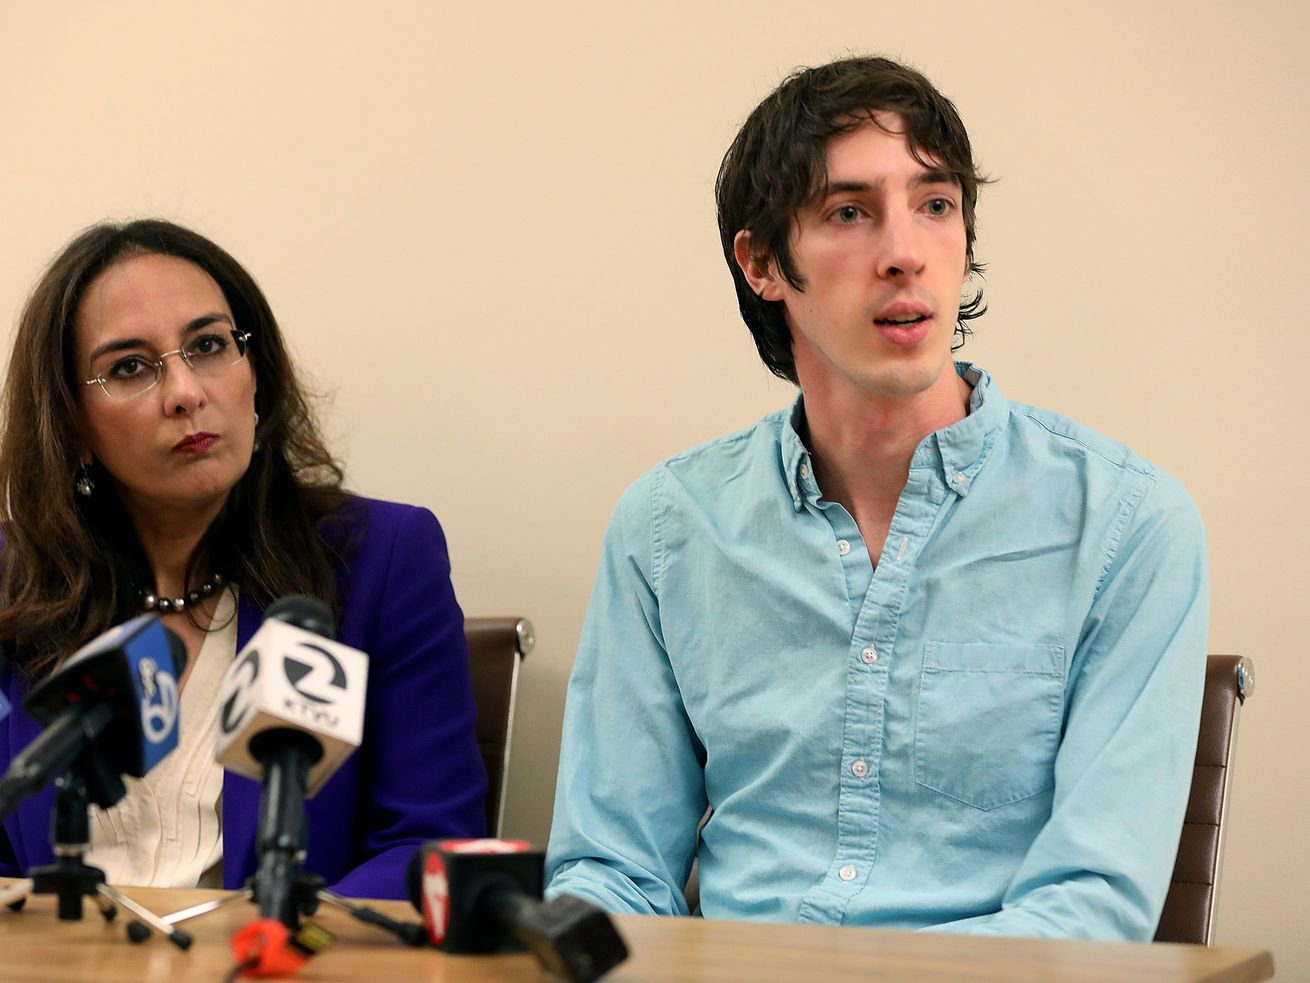 James Damore sits with his attorney at a press conference.